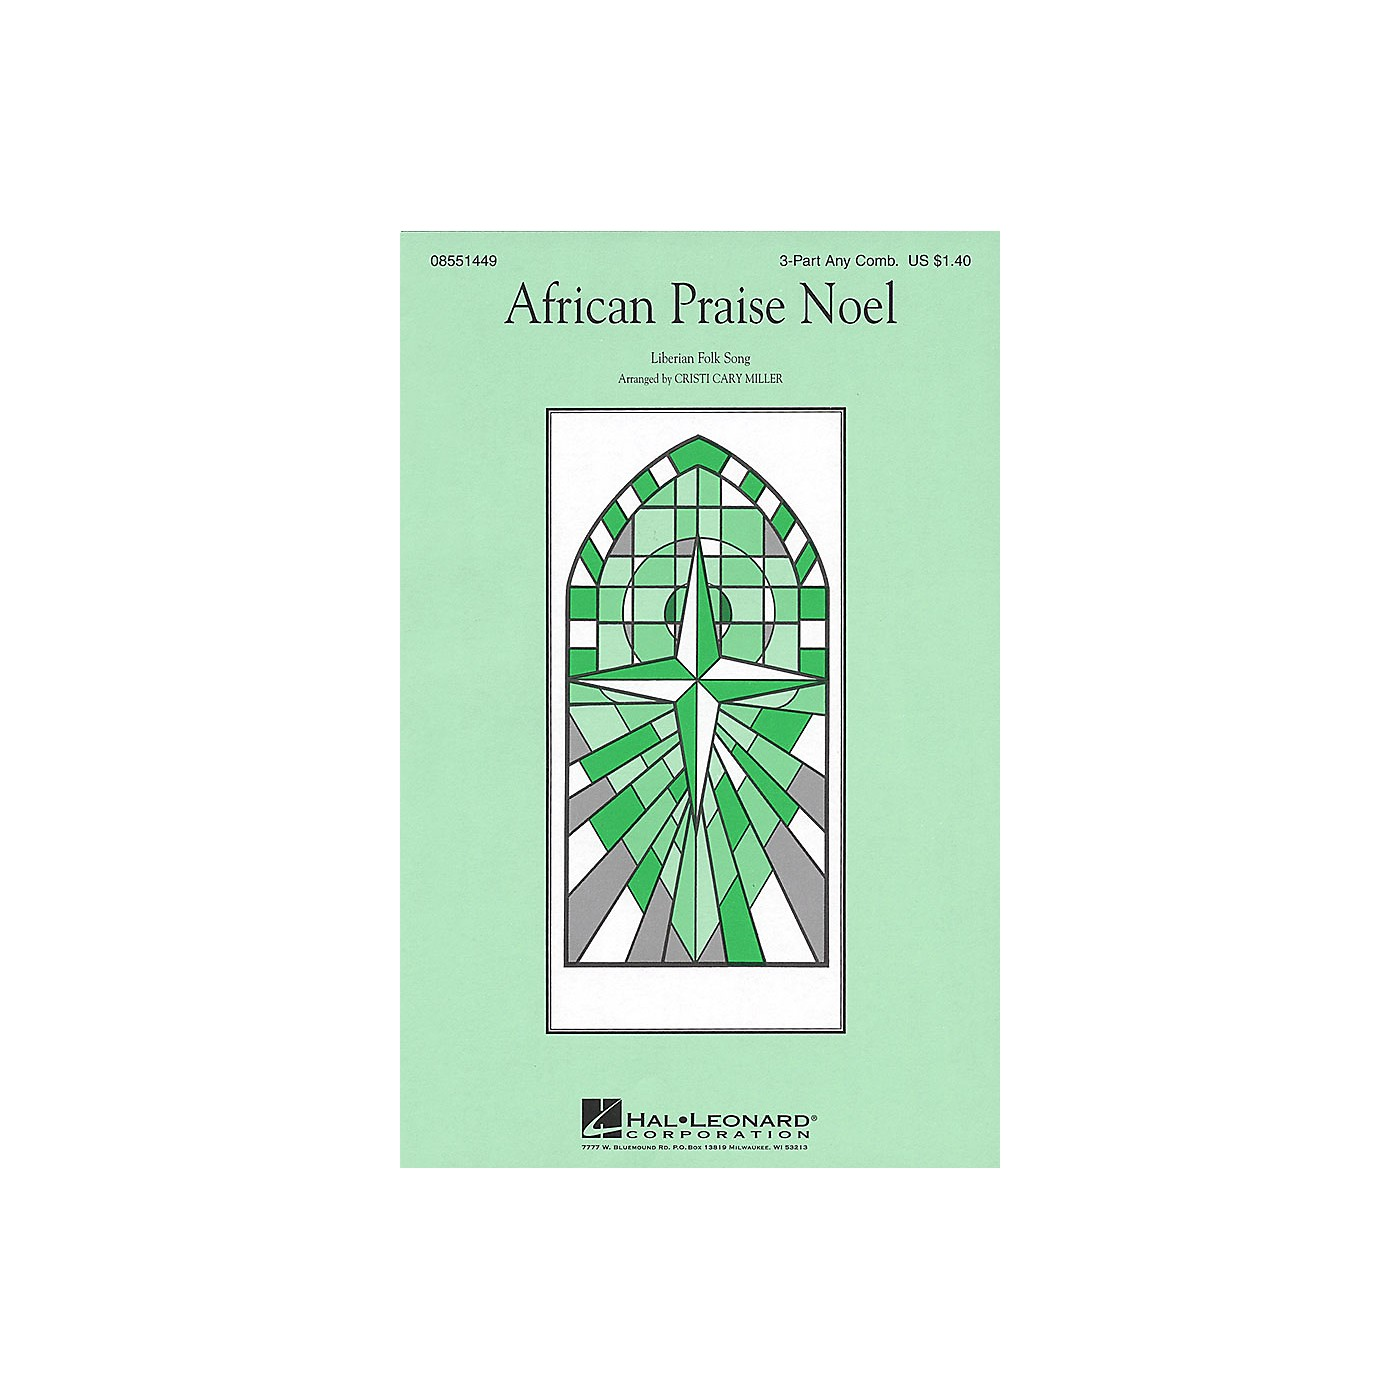 Hal Leonard African Praise Noel 3 Part Any Combination arranged by Cristi Cary Miller thumbnail